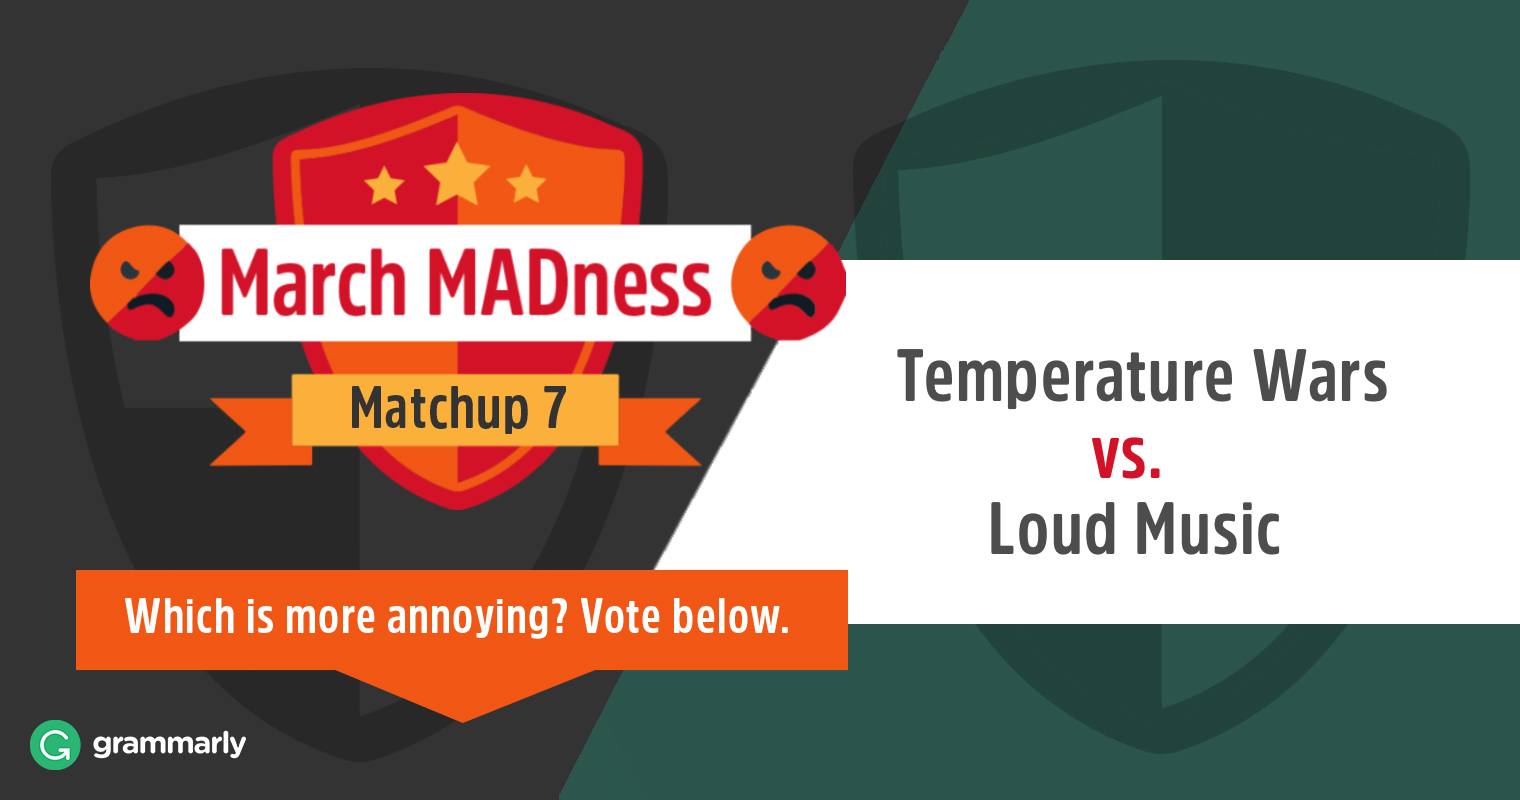 March MADness: Temperature Wars vs. Loud Music image